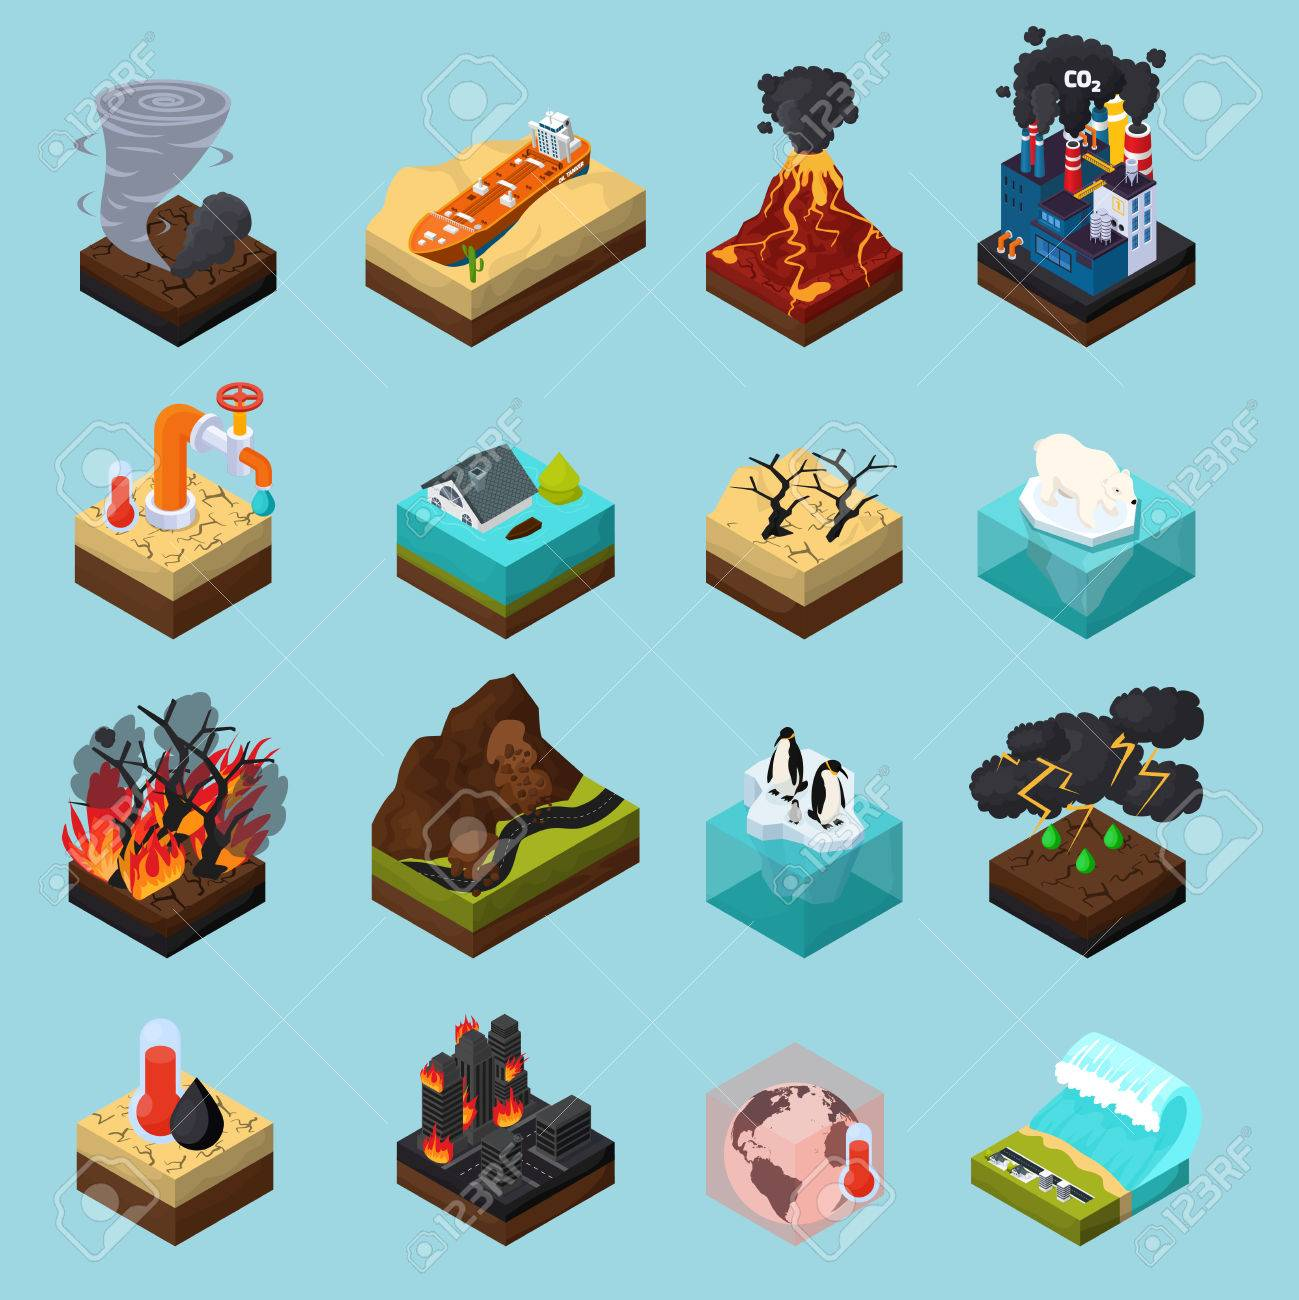 Global warming set of orthogonal isometric icons with climate changes on blue background isolated vector illustration - 86223113